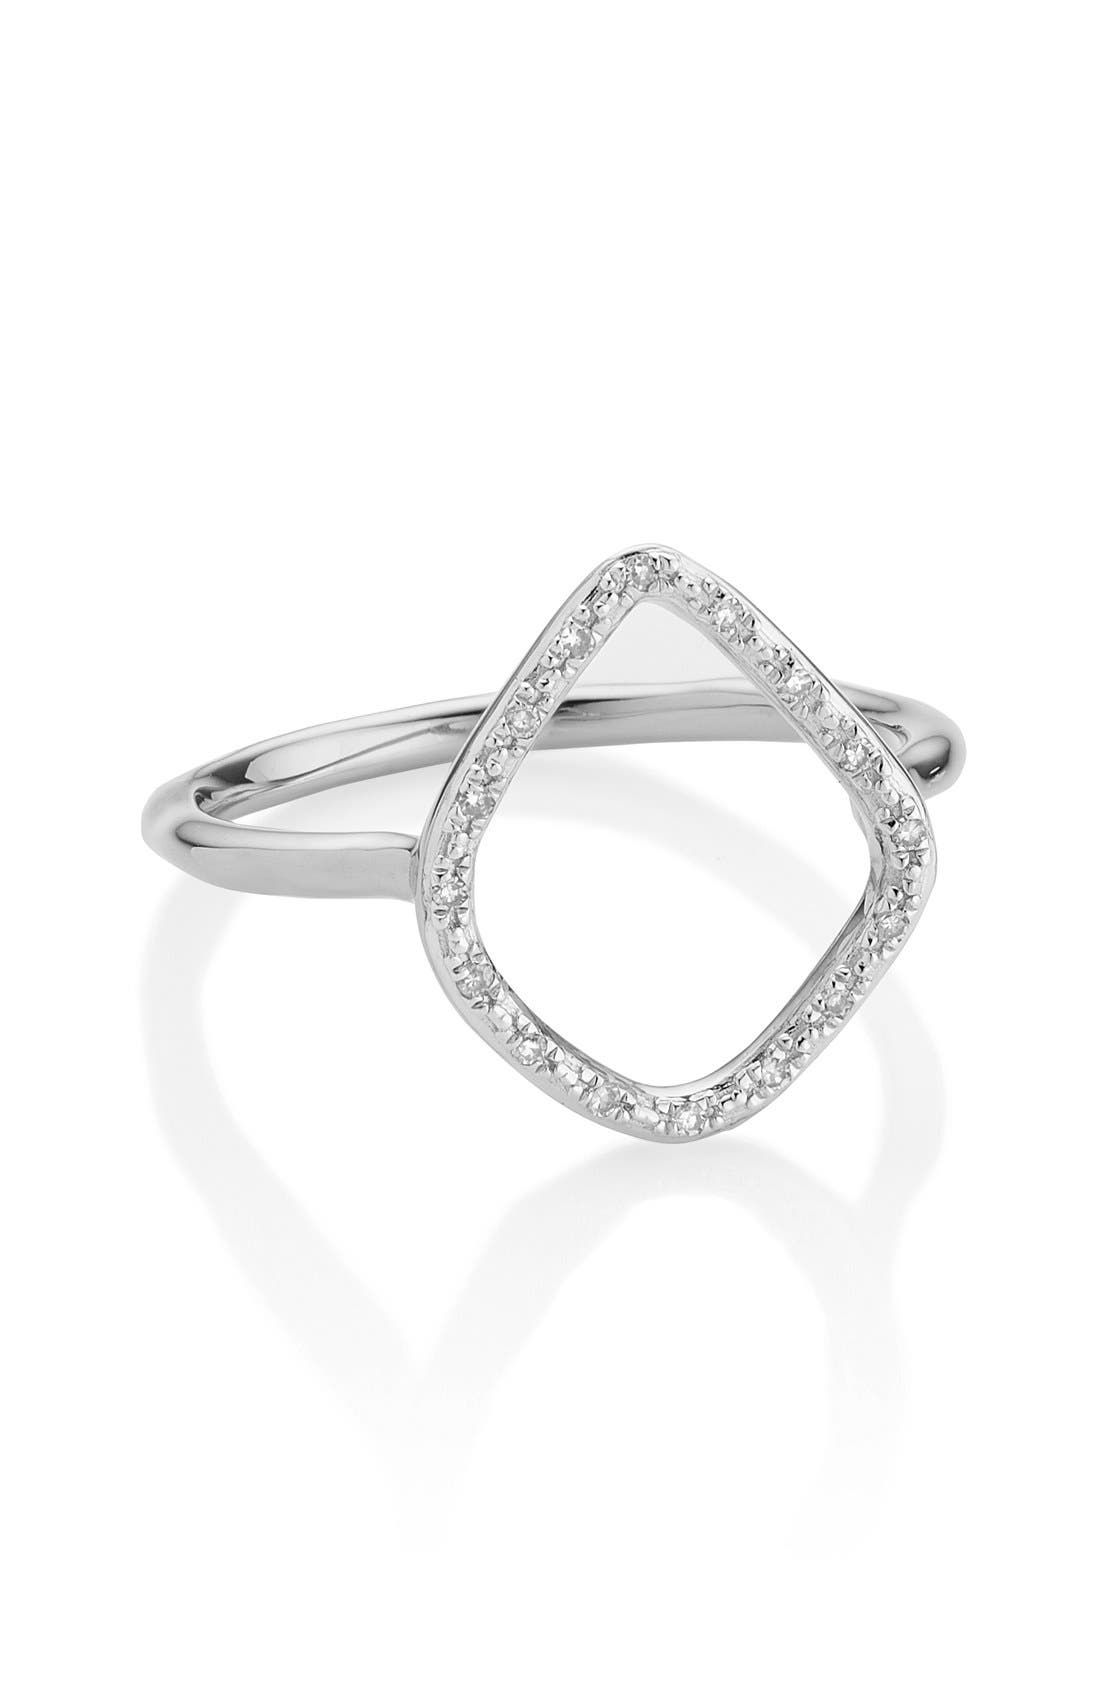 'Riva' Diamond Hoop Ring,                             Alternate thumbnail 2, color,                             SILVER